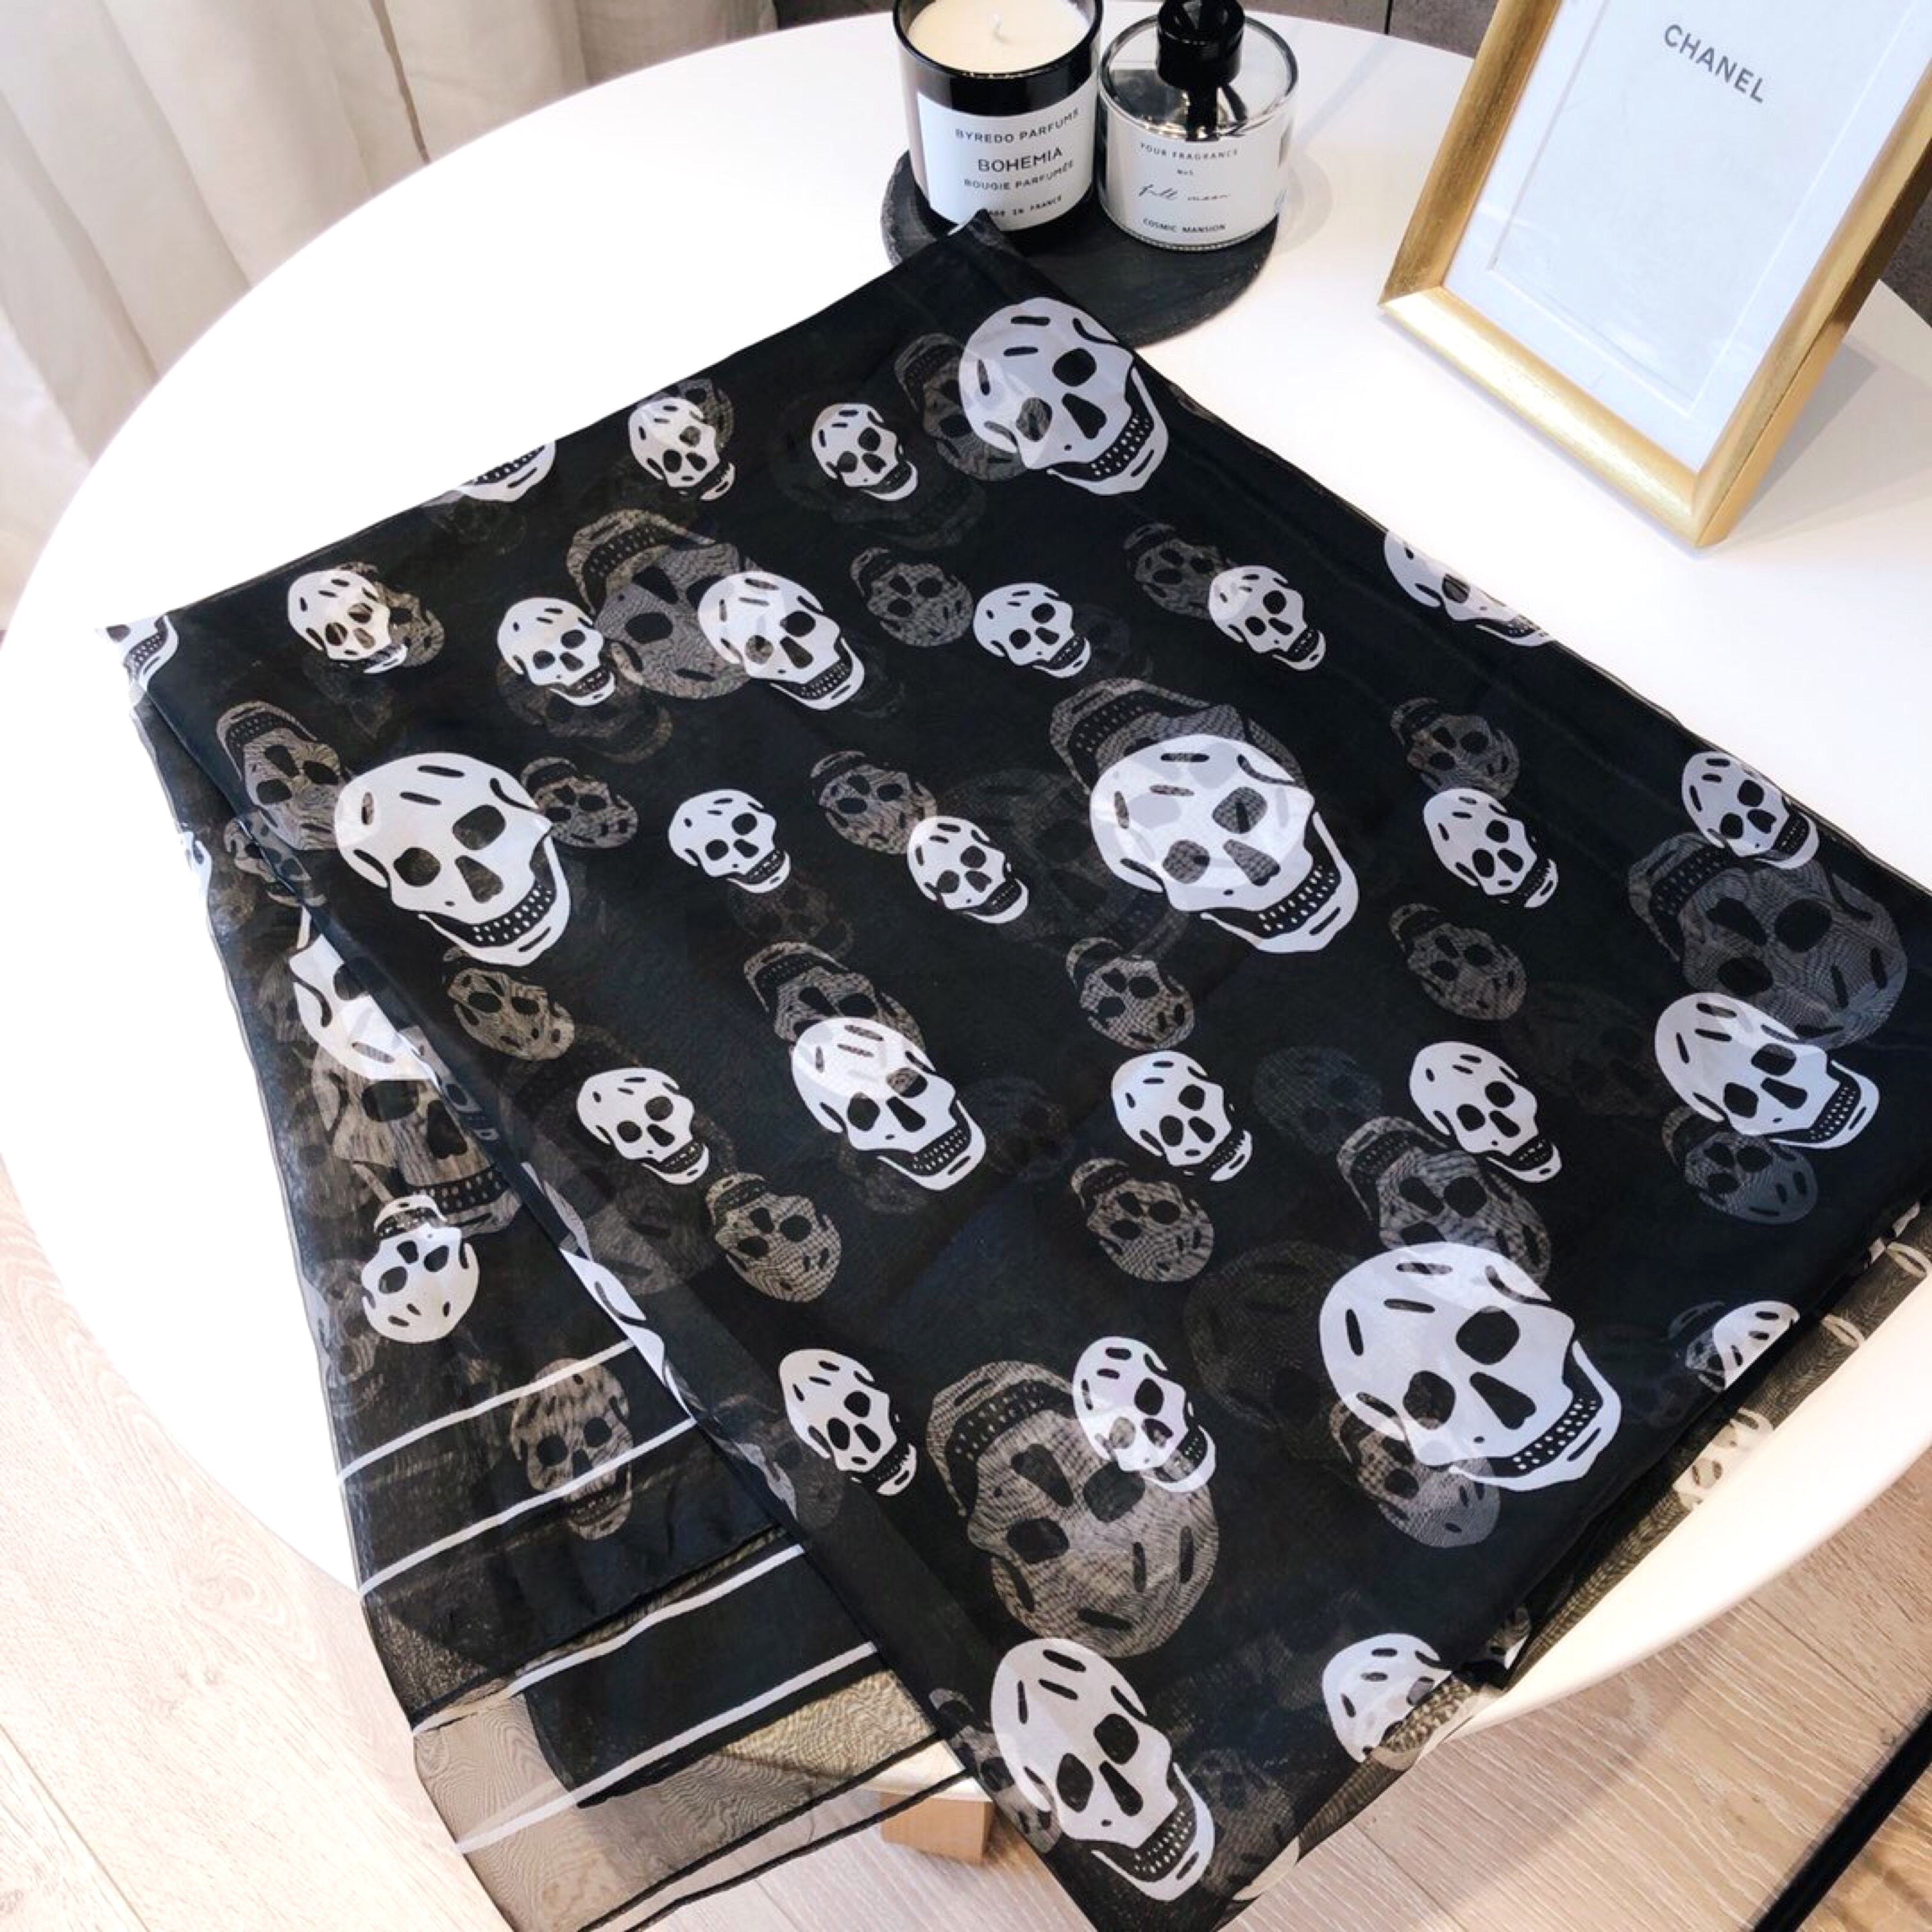 Luxury Brand Silk Scarf	Classic Skull Scarf Female Spring And Autumn New Ghost Head Printing Seaside Sunscreen Beach Towel Shawl